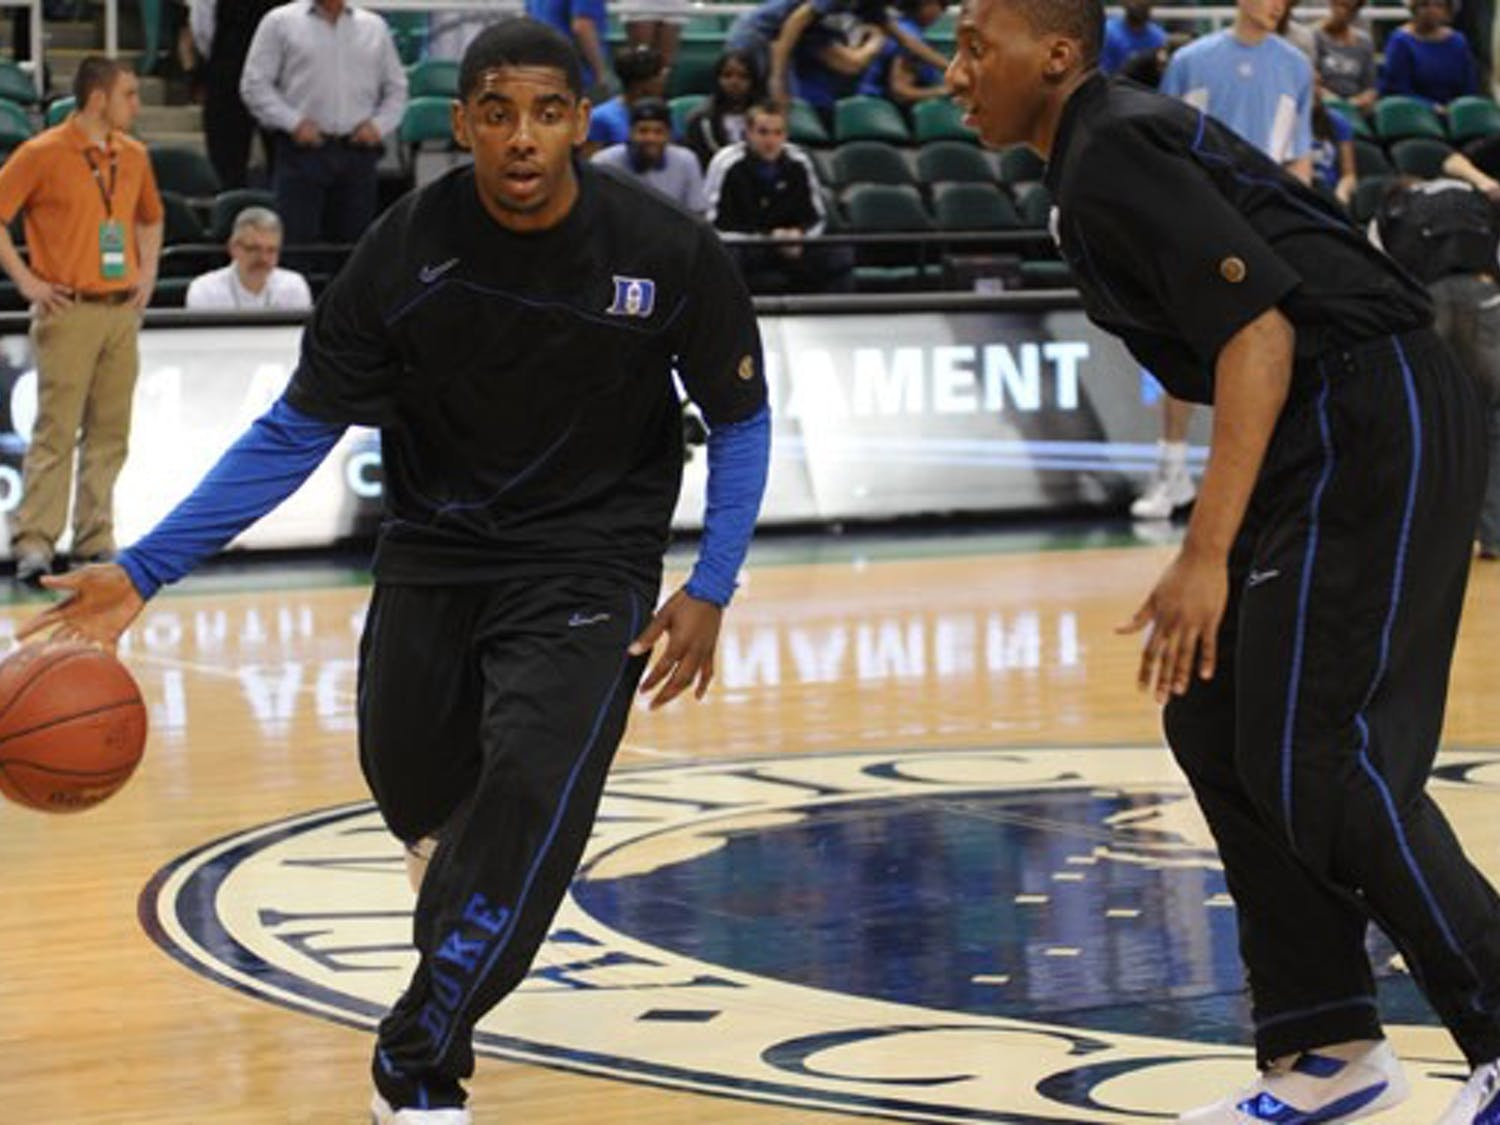 Kyrie Irving participated in warmups twice before ACC tournament games, exciting Duke fans in Greensboro.